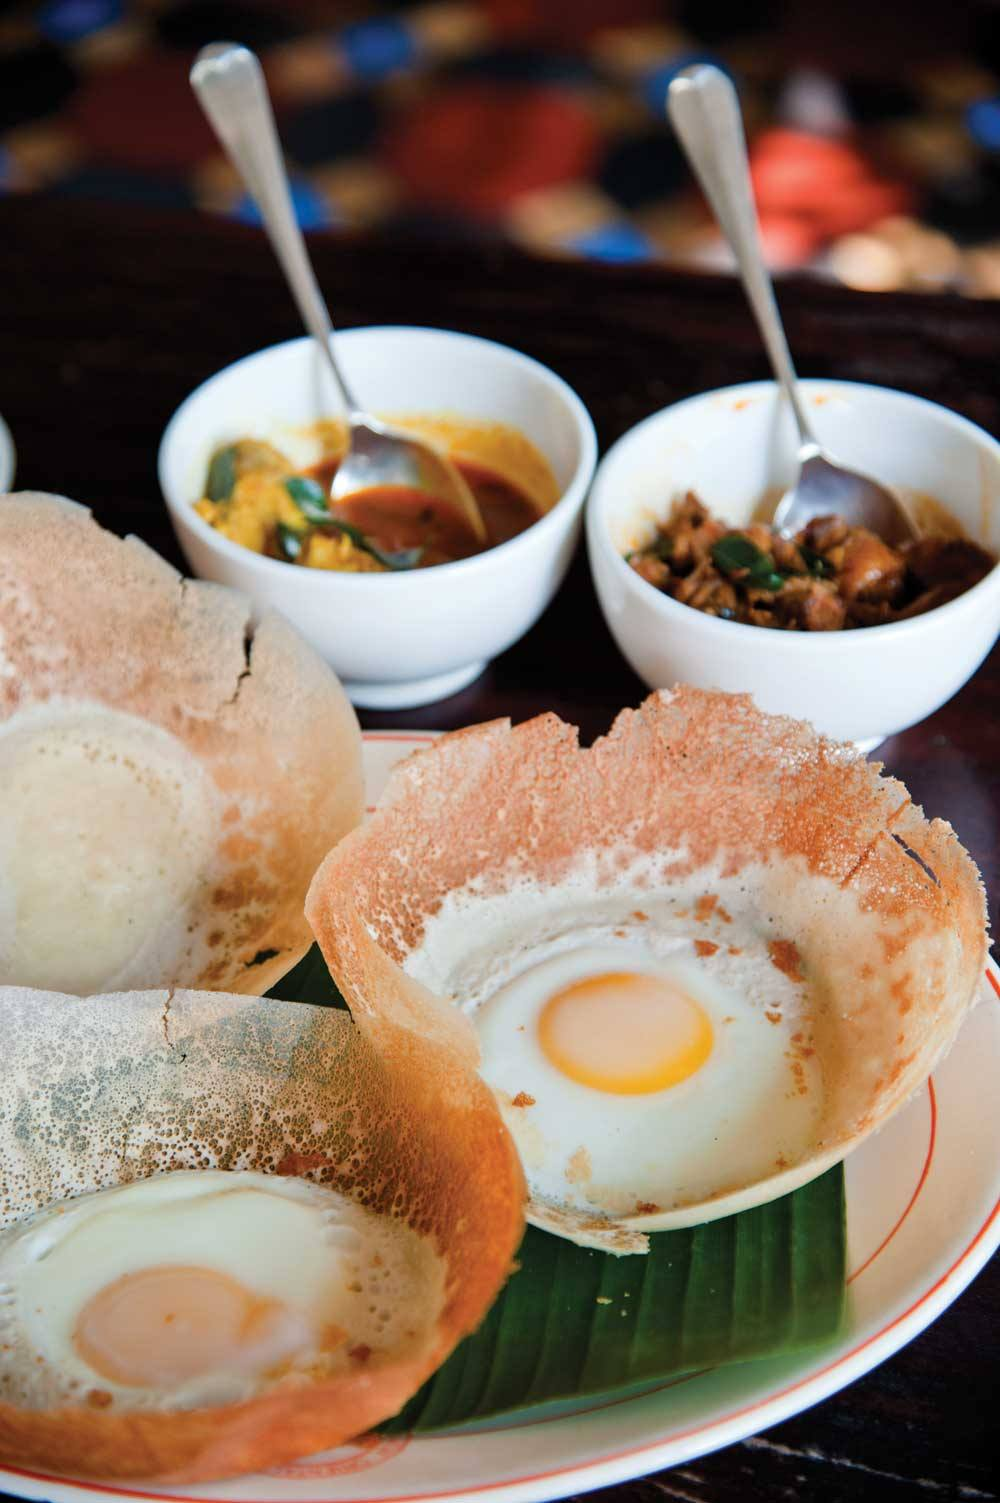 A traditional Sri Lankan breakfast of curries and egg hoppers at Amangalla.